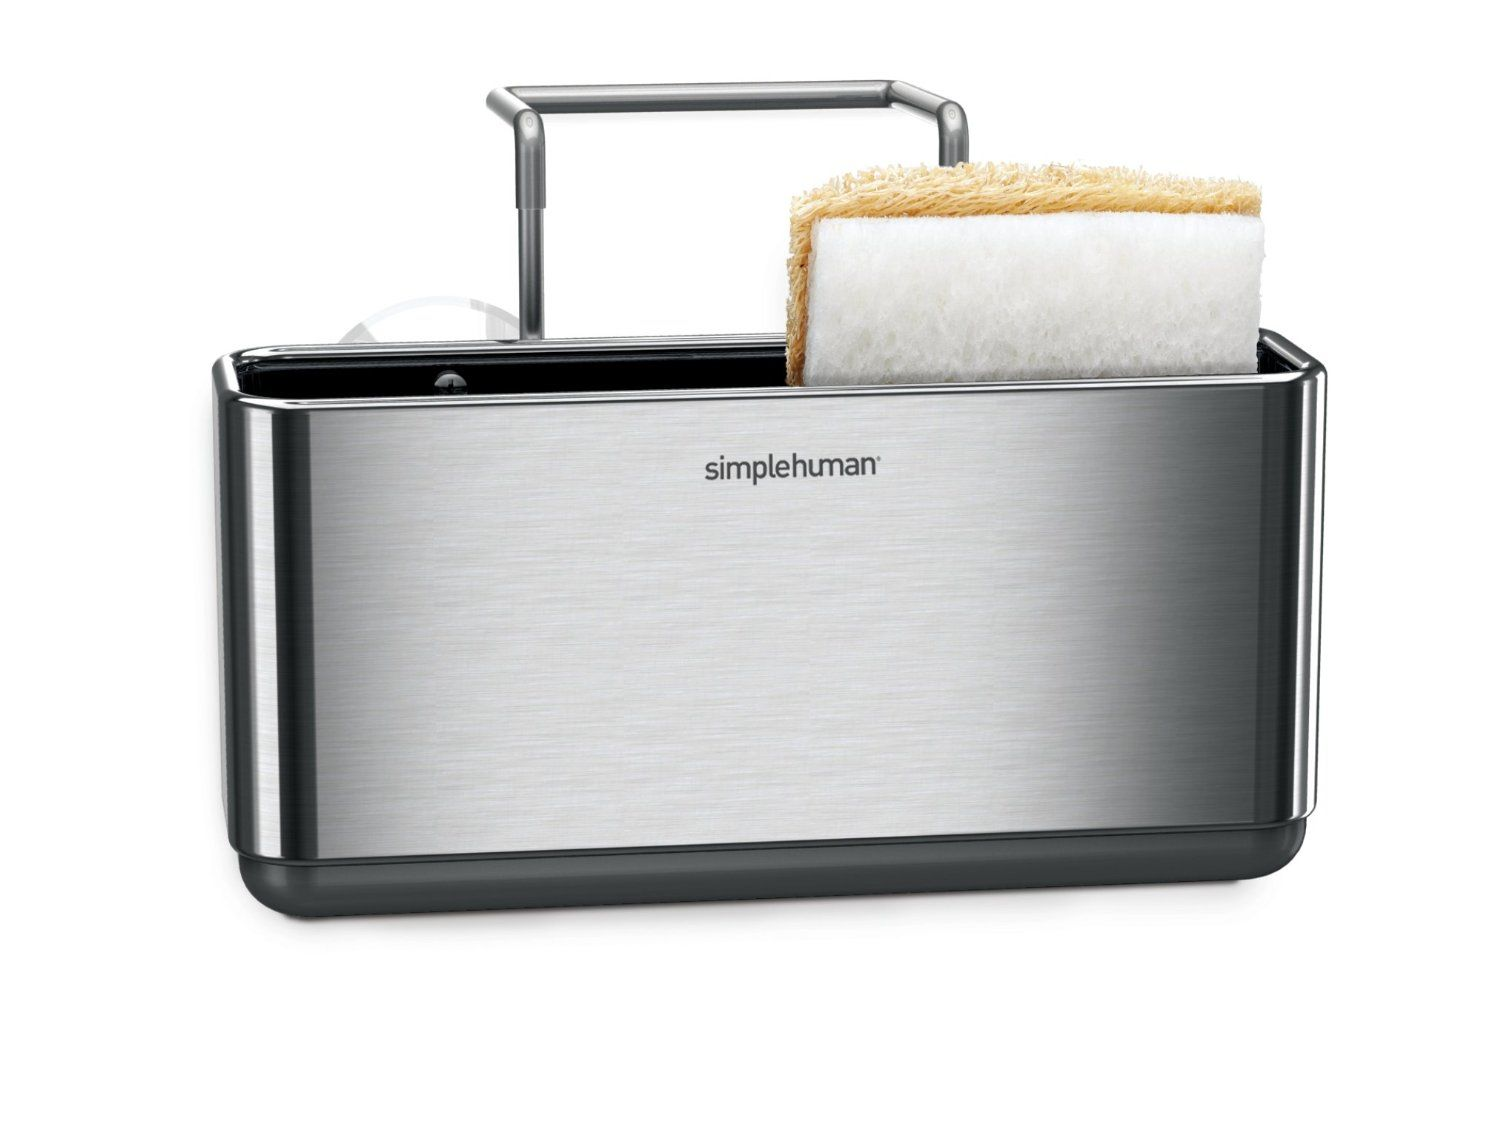 Best Simplehuman Slim Sink Caddy Stainless Steel With Images 400 x 300